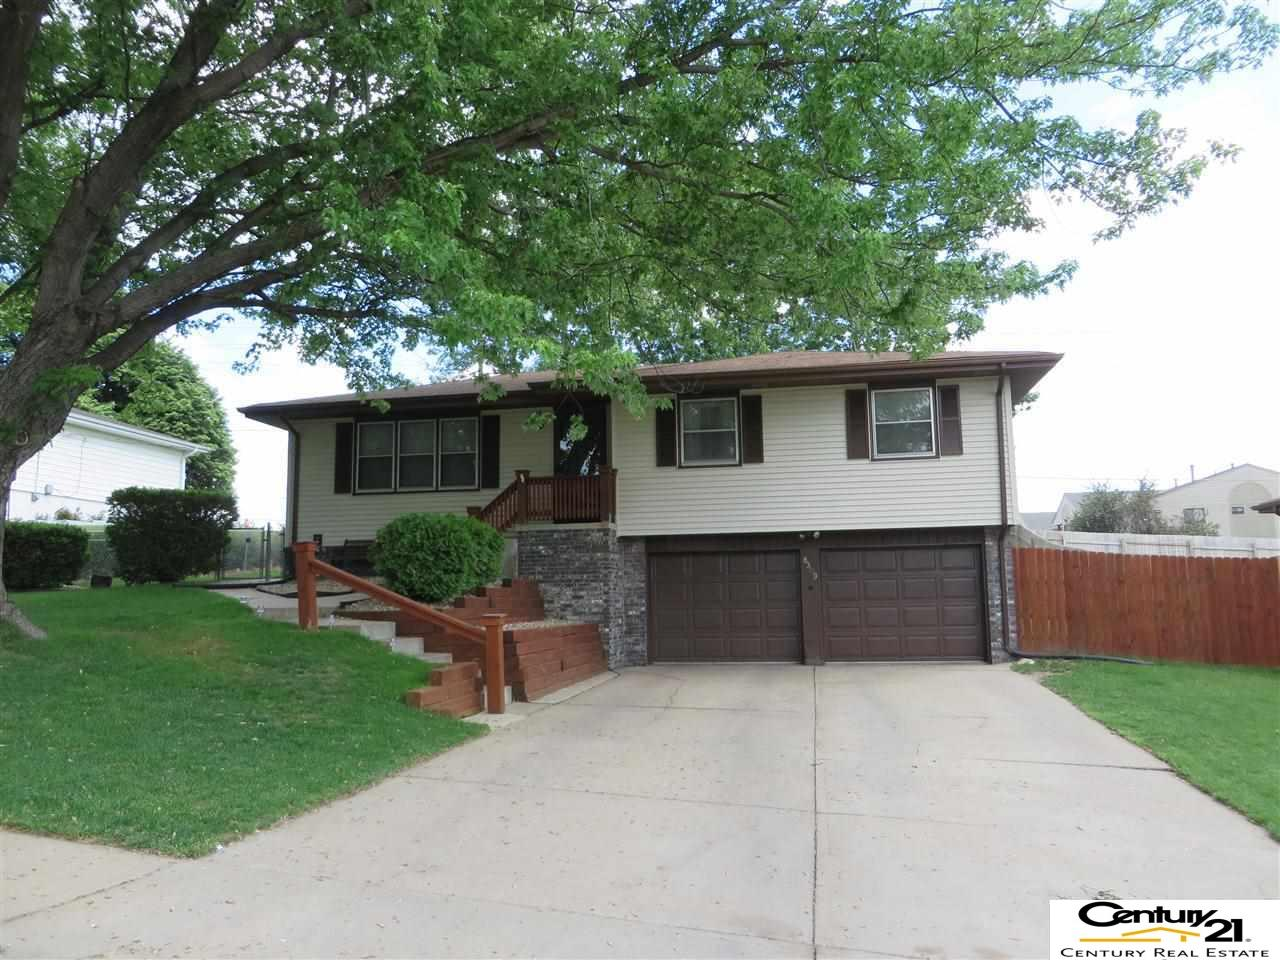 Rental Homes for Rent, ListingId:35748727, location: 8309 S 48th Omaha 68157